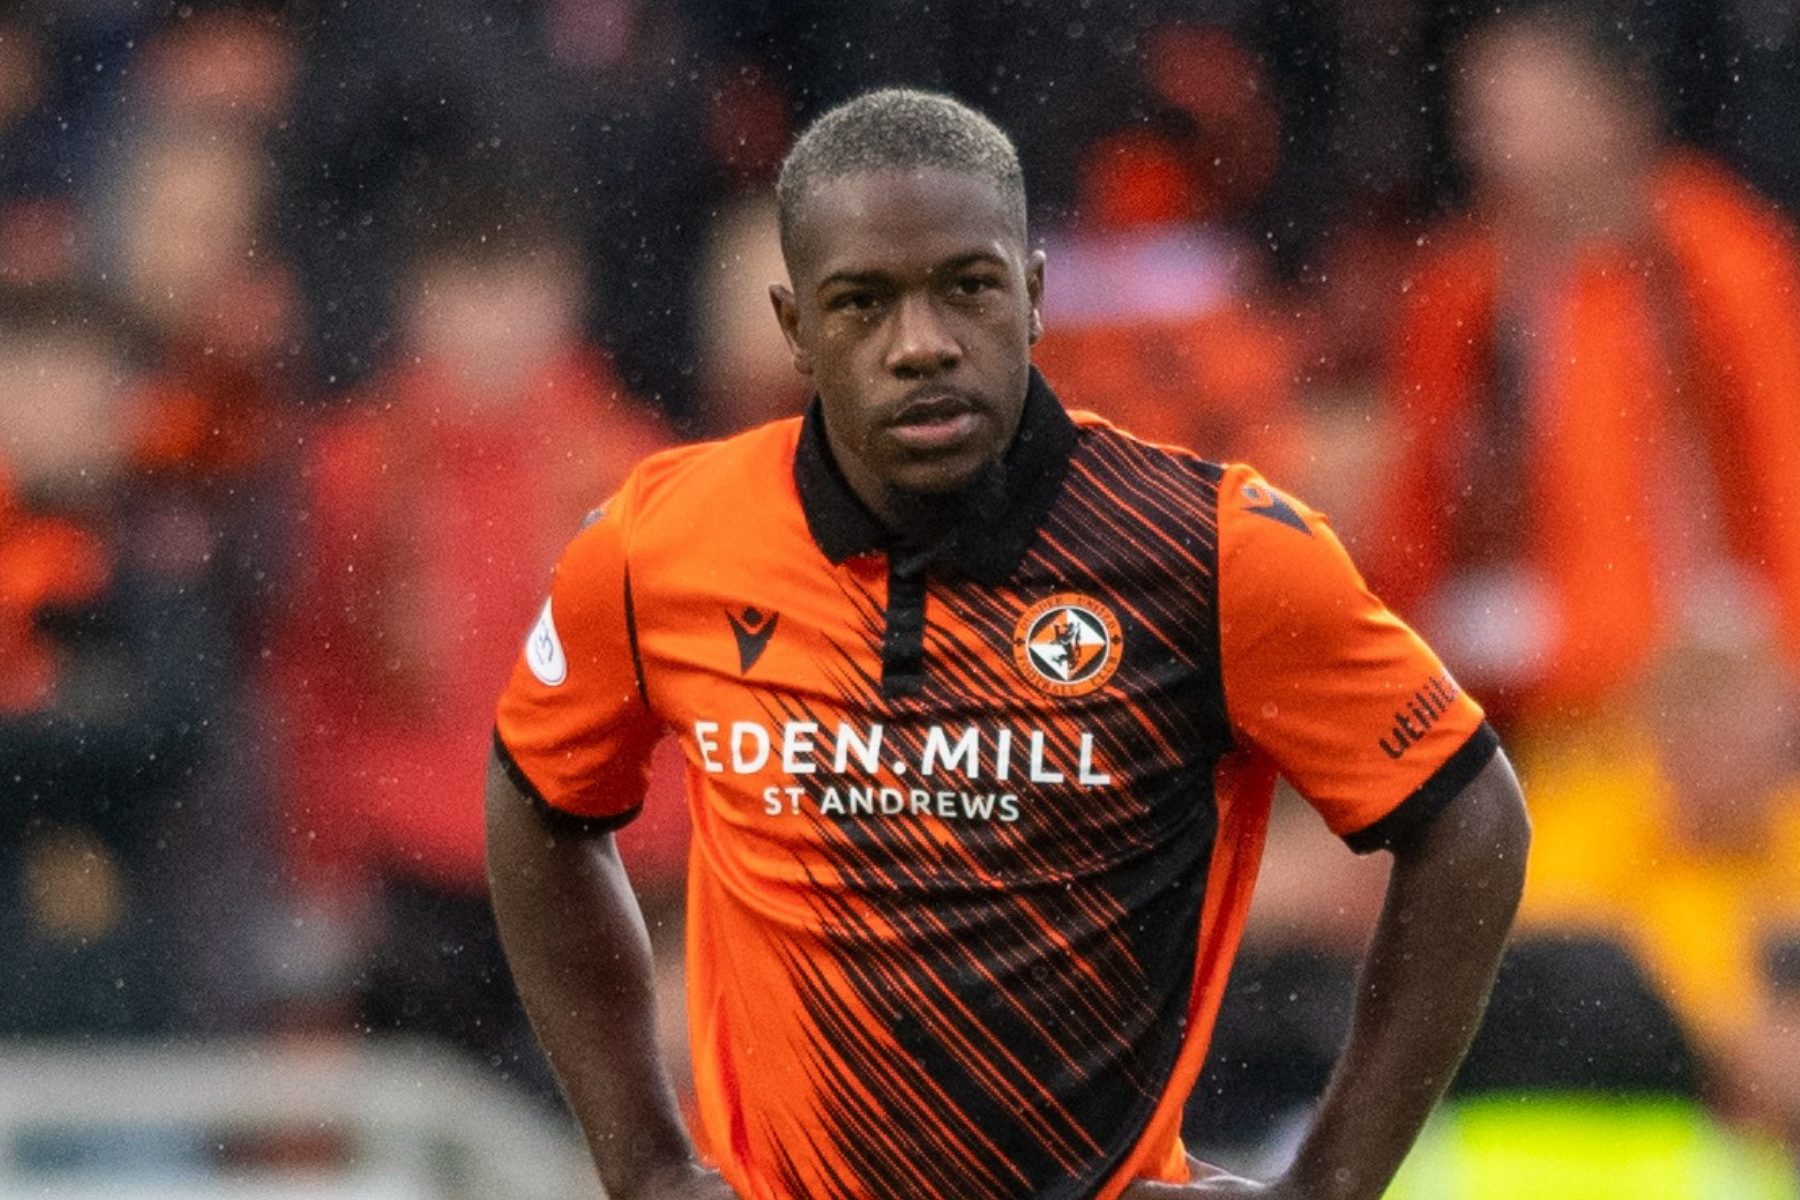 Ross County say fans 'fully exonerated' as 'no evidence of racist abuse' of Jeando Fuchs